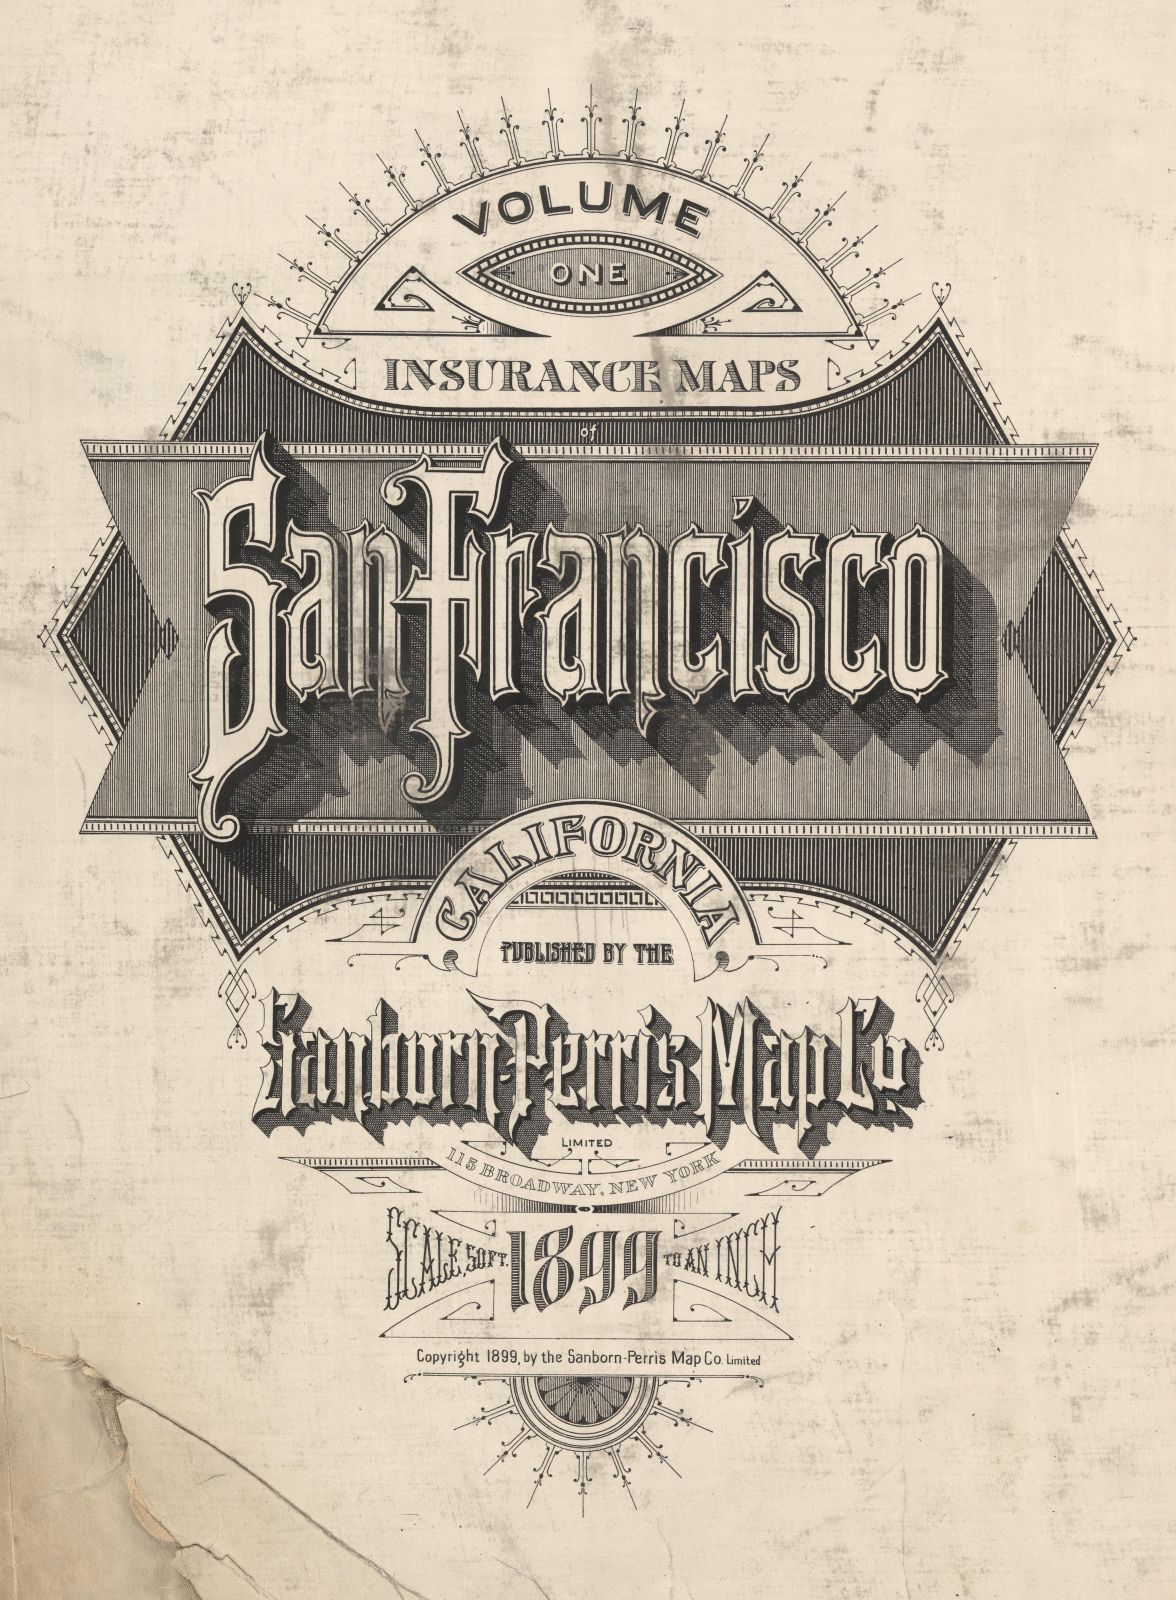 1899 Sanborn San Francisco Fire Insurance Maps - Title Page